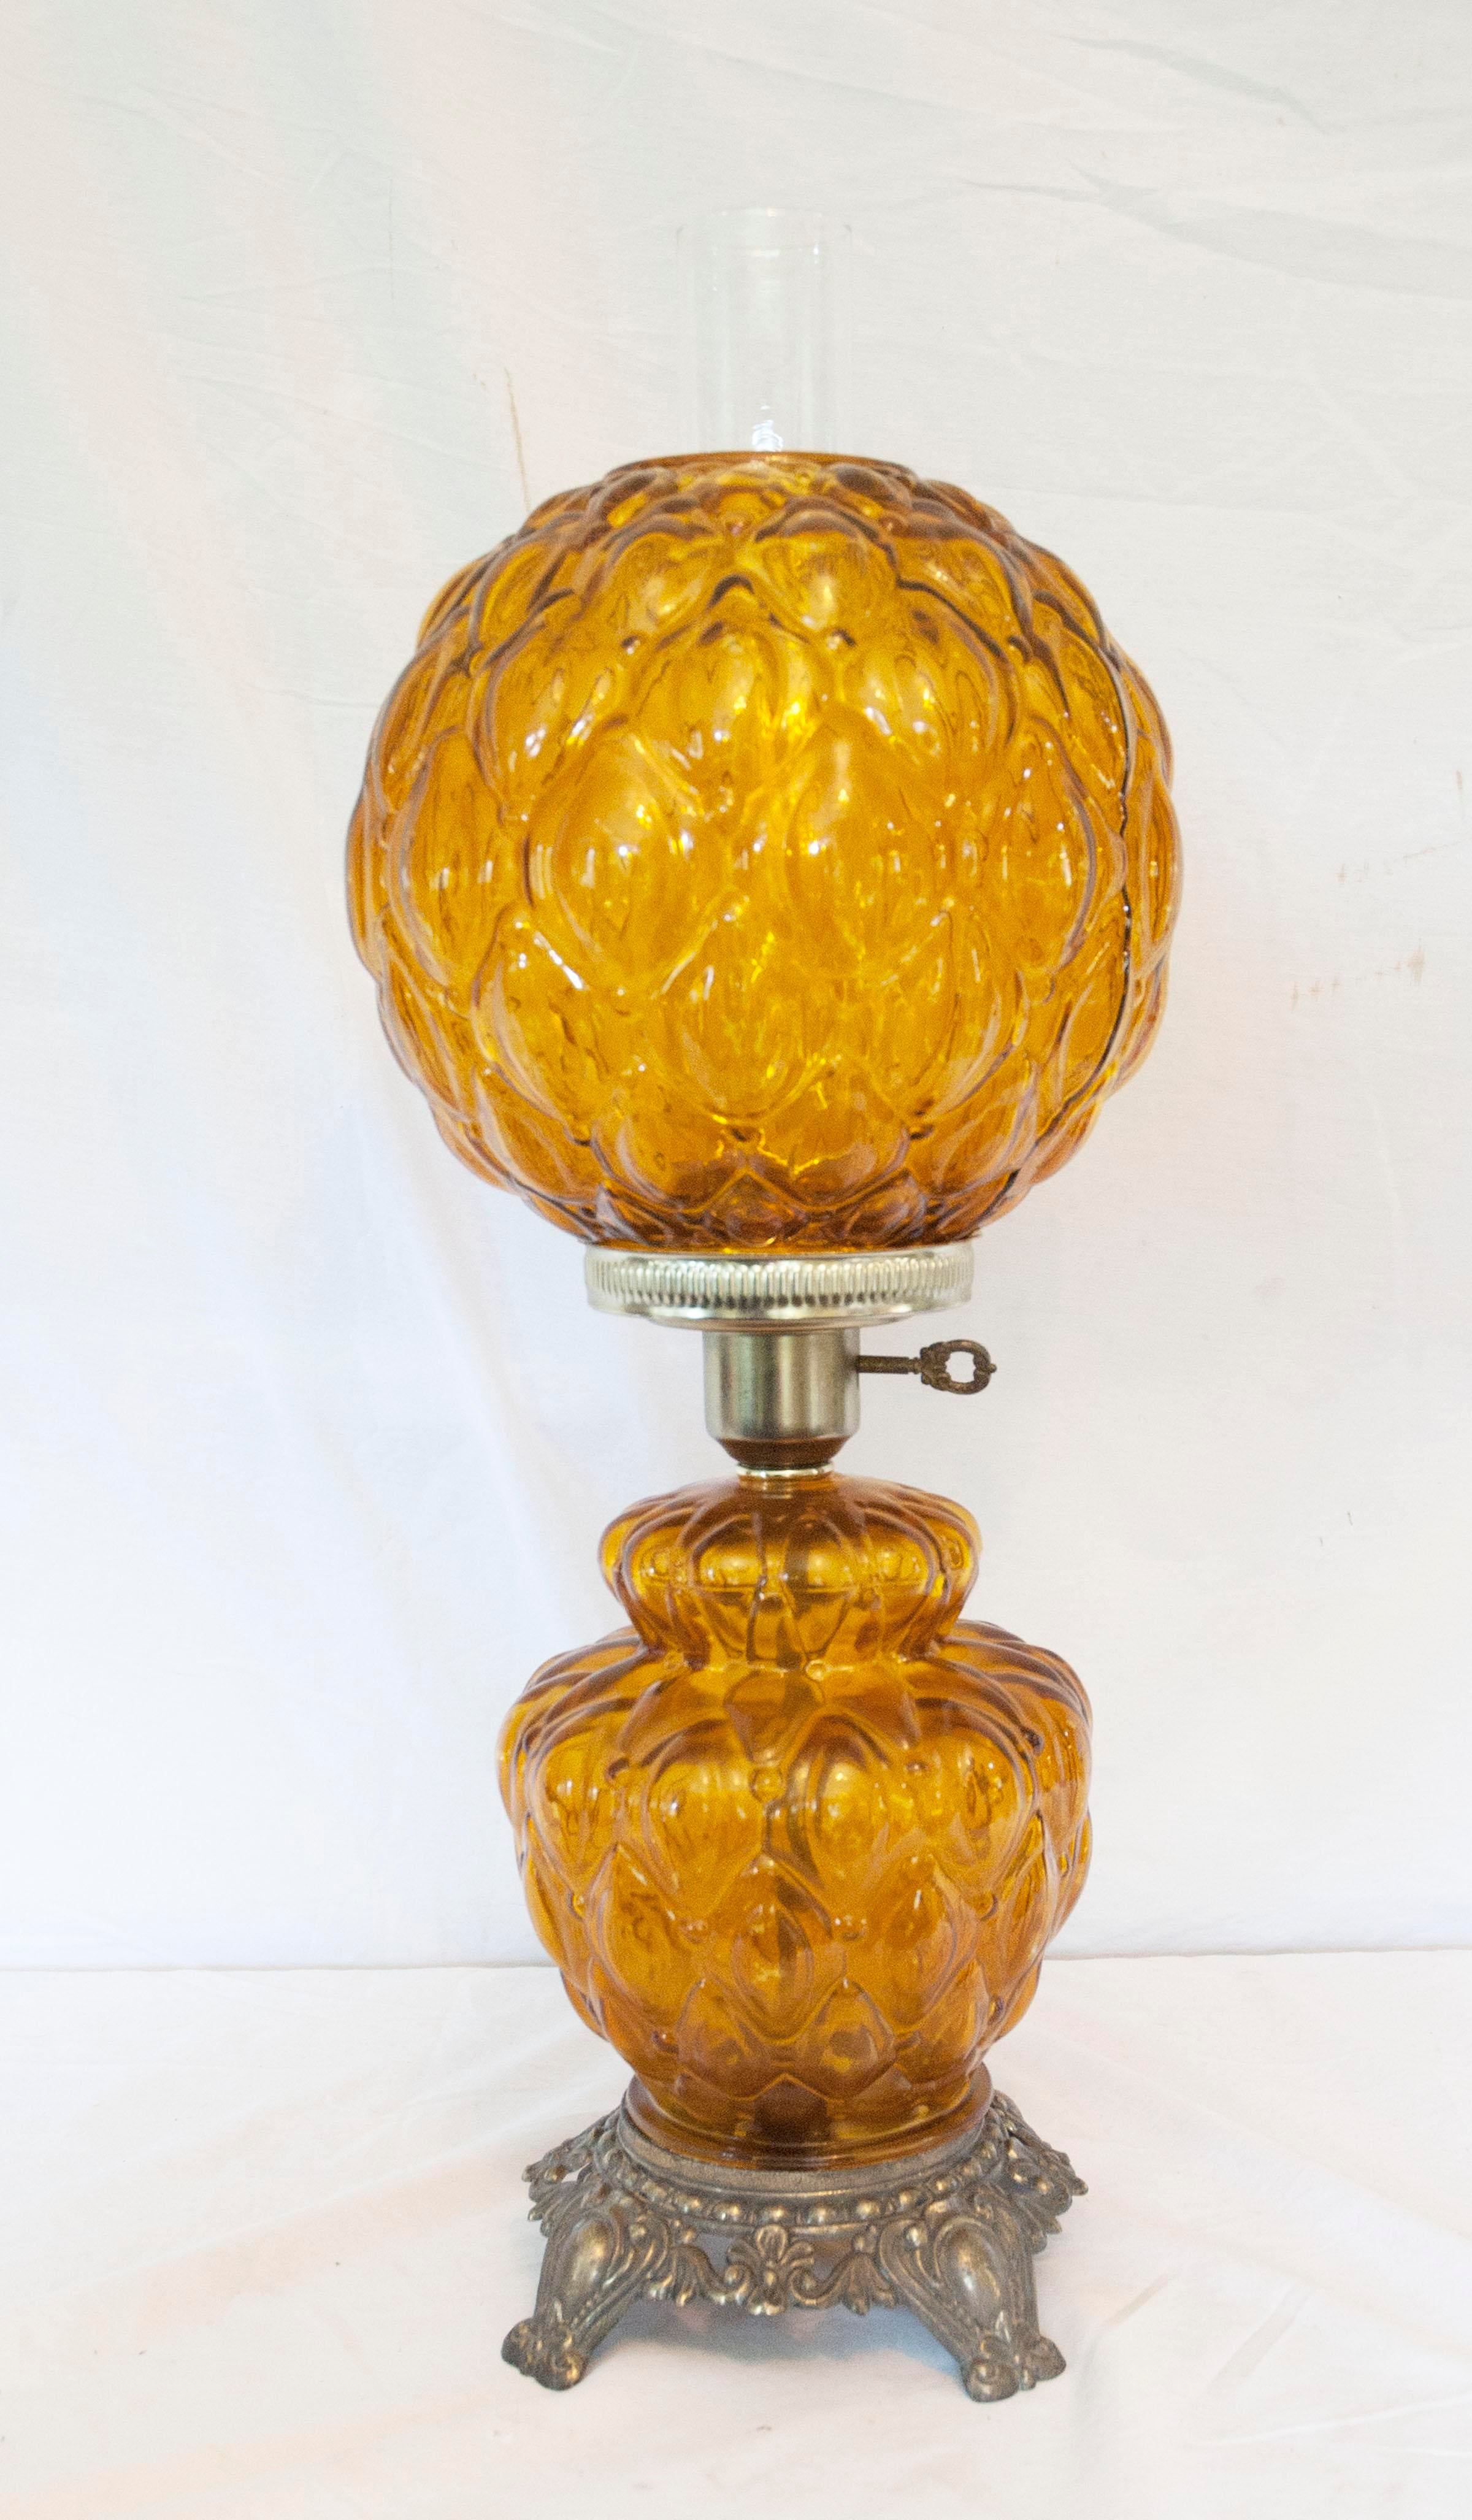 Tall Hurricane Lamp With Glass Chimney. The Lamp Has A Night Light In The  Base. Early American Vintage Amber Quilted Hurricane Table ...